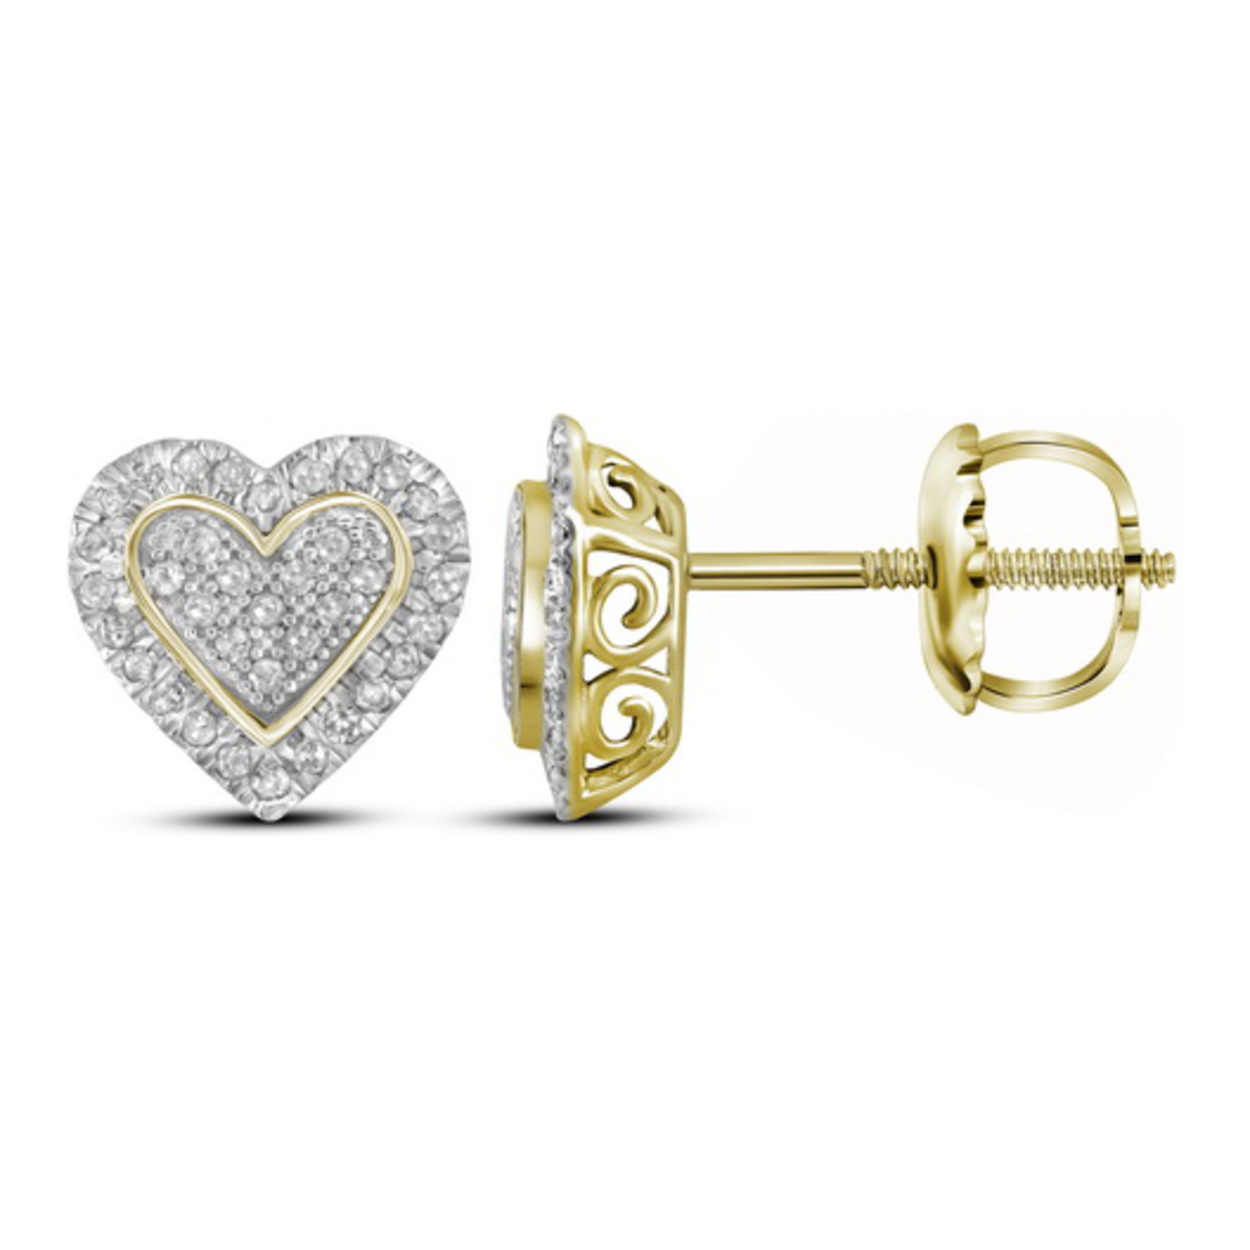 out gold yellow in white with nl and round diamond hoop earring carat hoops prong earrings inside yg ctw charm set stylish jewelry